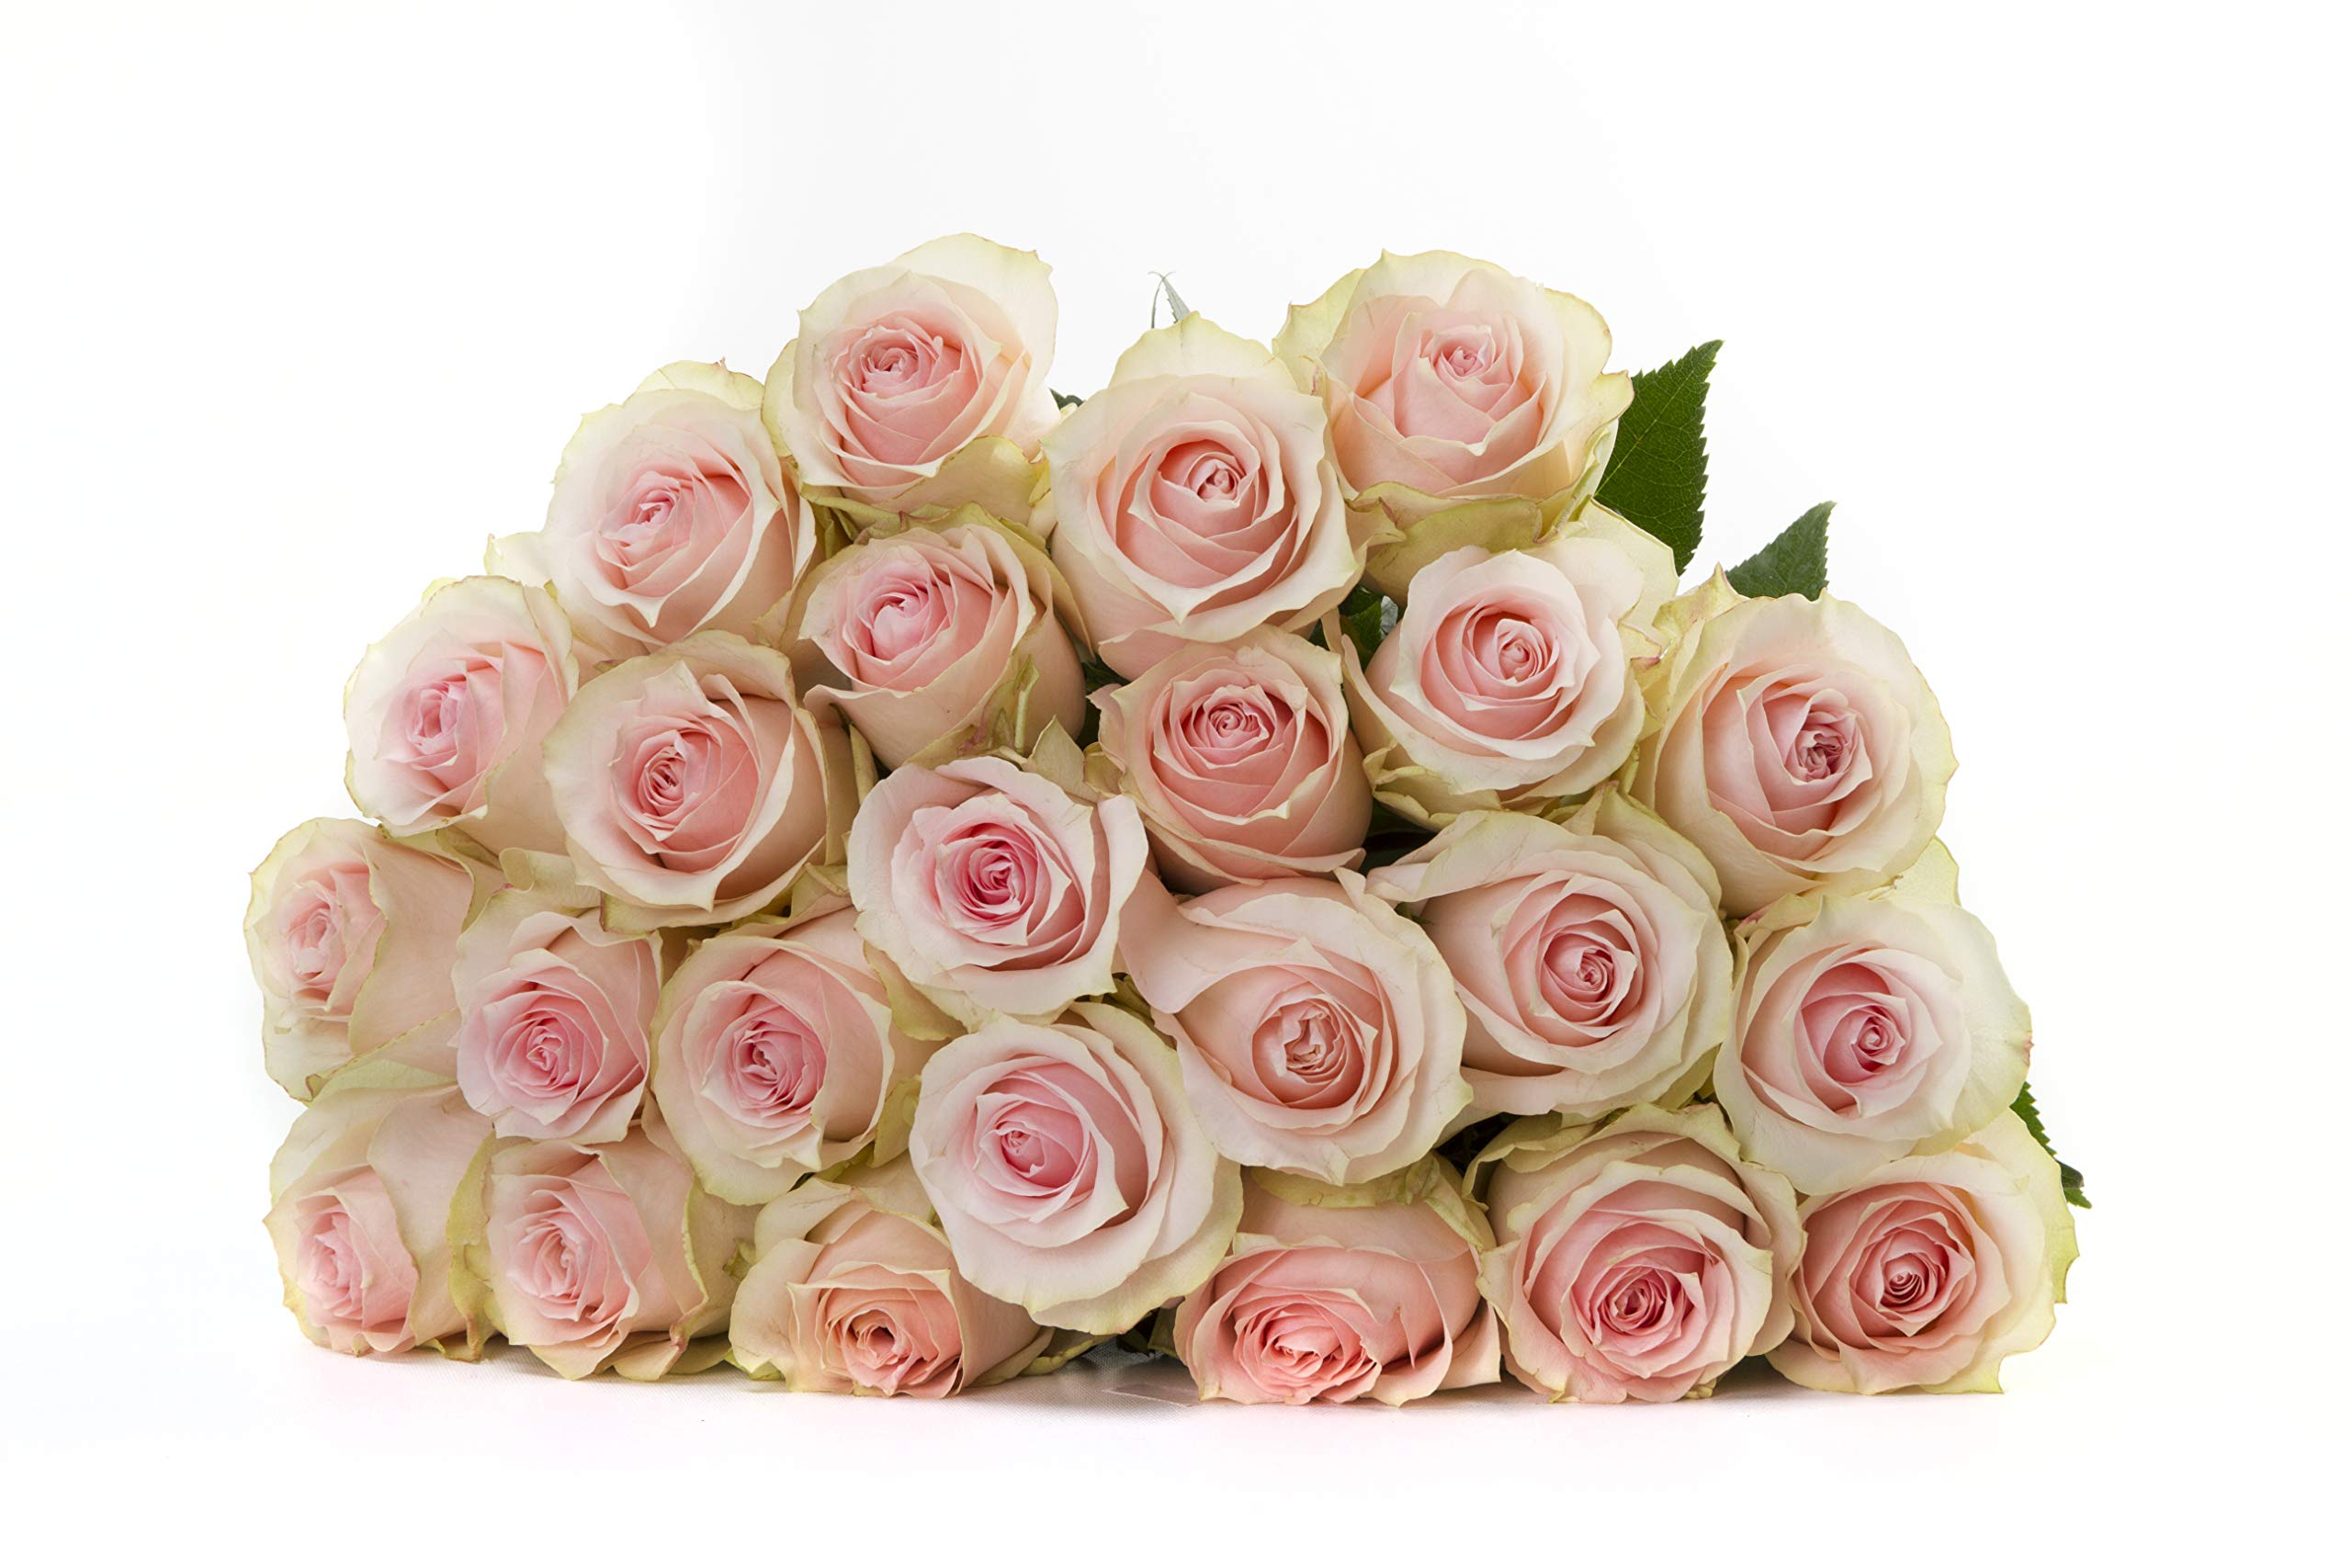 Martha Stewart Roses by BloomsyBox - Two Dozen Soft Pink Geraldine Roses Selected by Martha and Hand-Tied, Long Vase Life